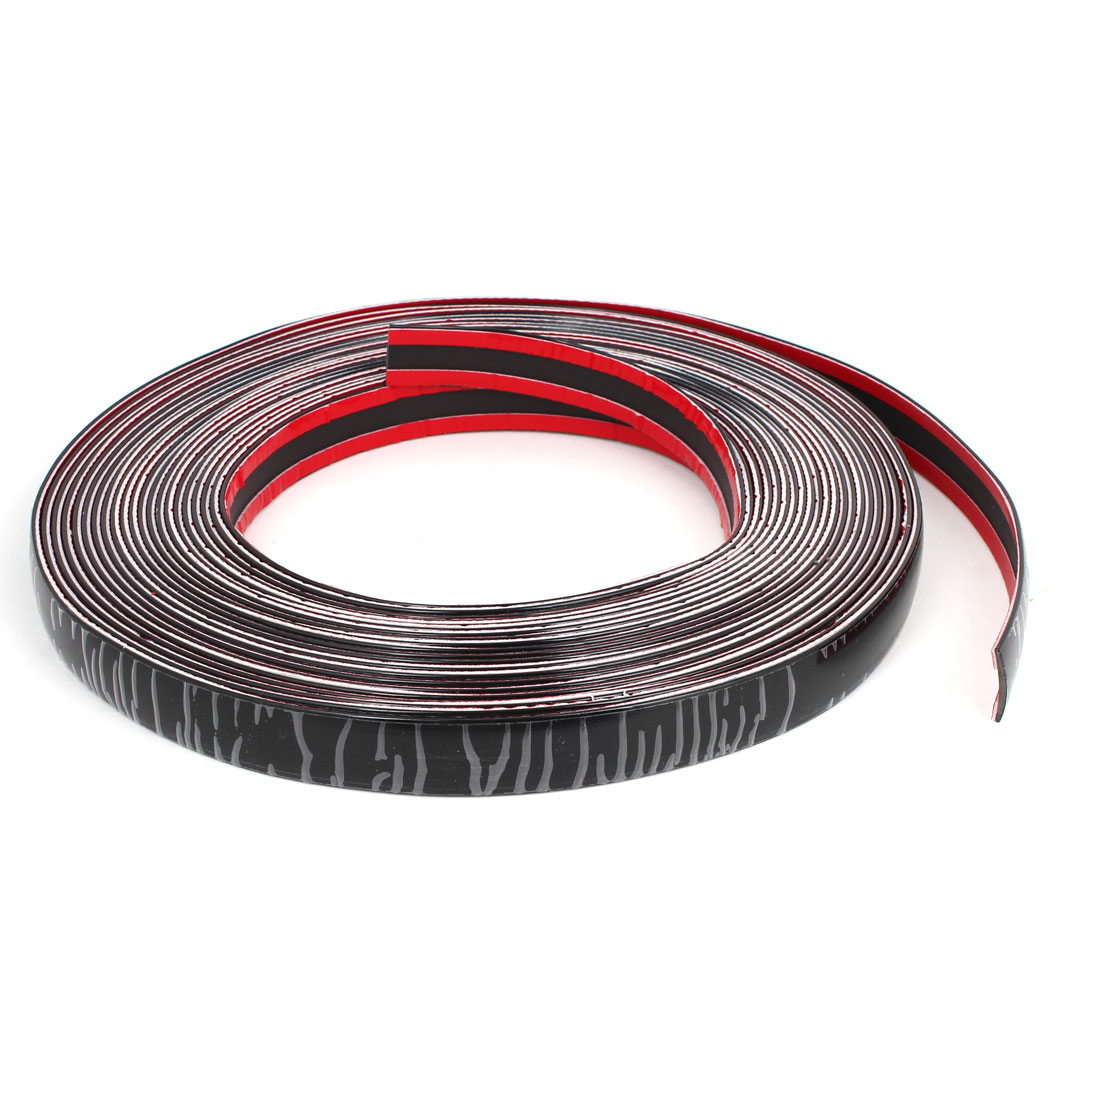 20mm Width 15M Adhesive Flexible Trim Strip Black for Car Interior Exterior Moulding